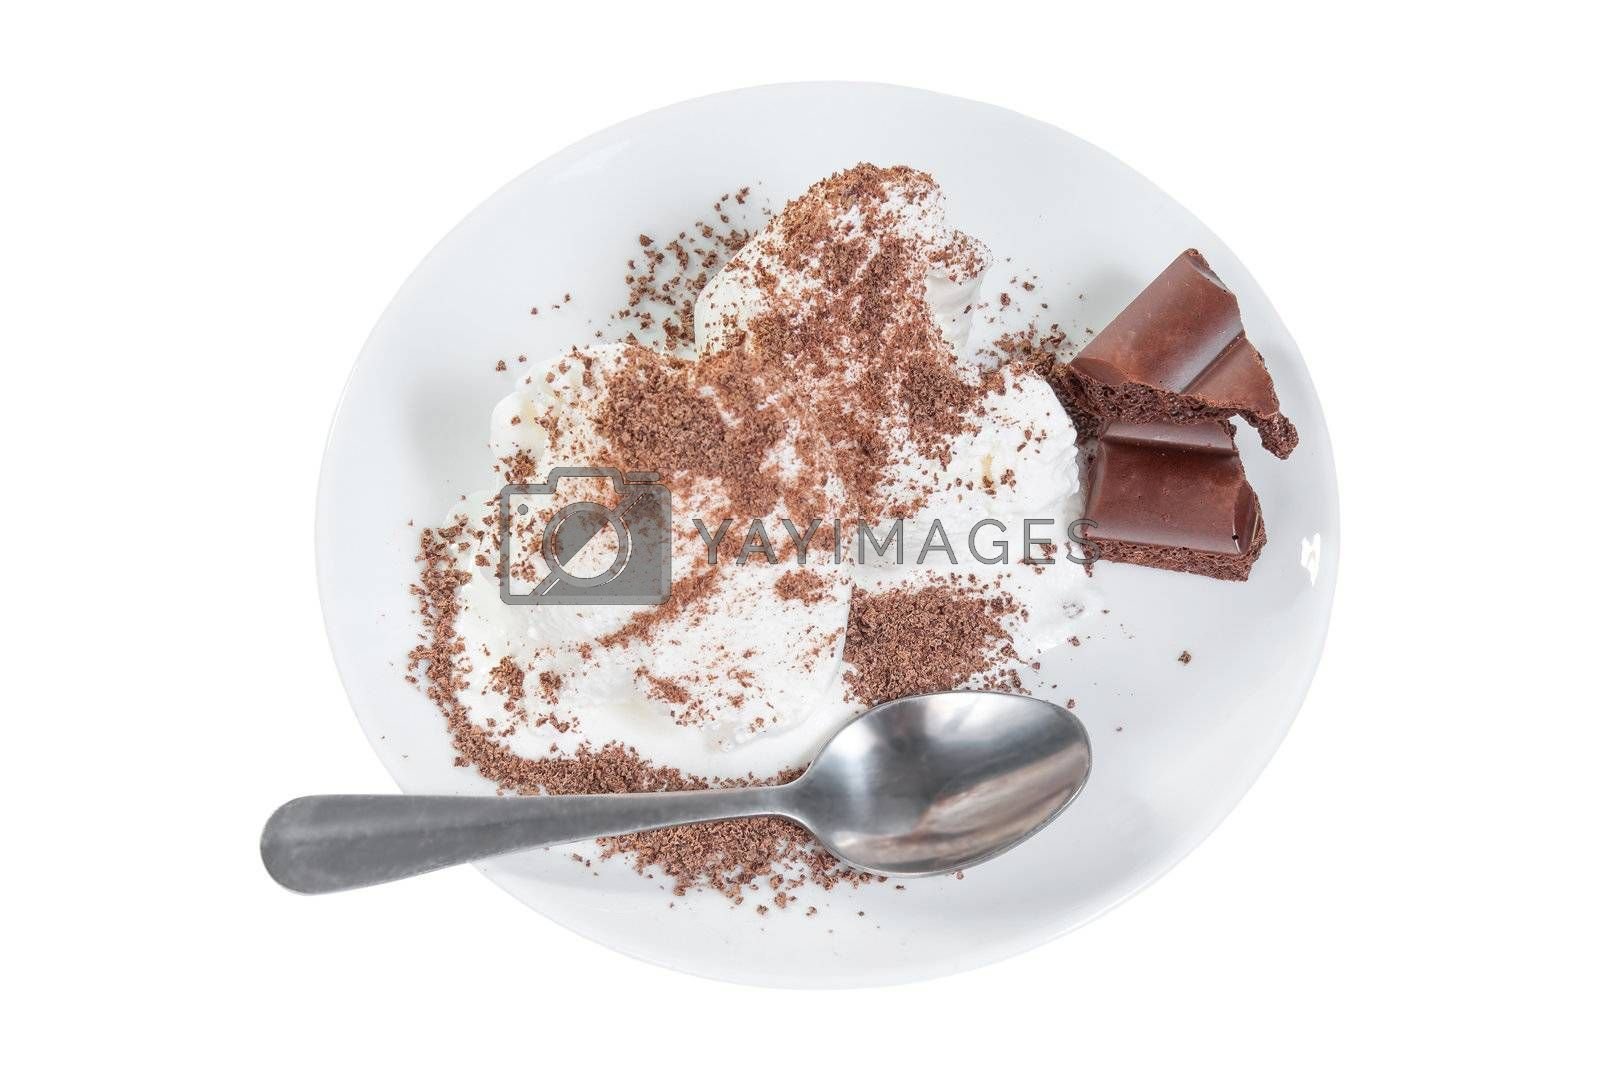 Ice cream with chocolate on plate and chocolate bar isolated on white background